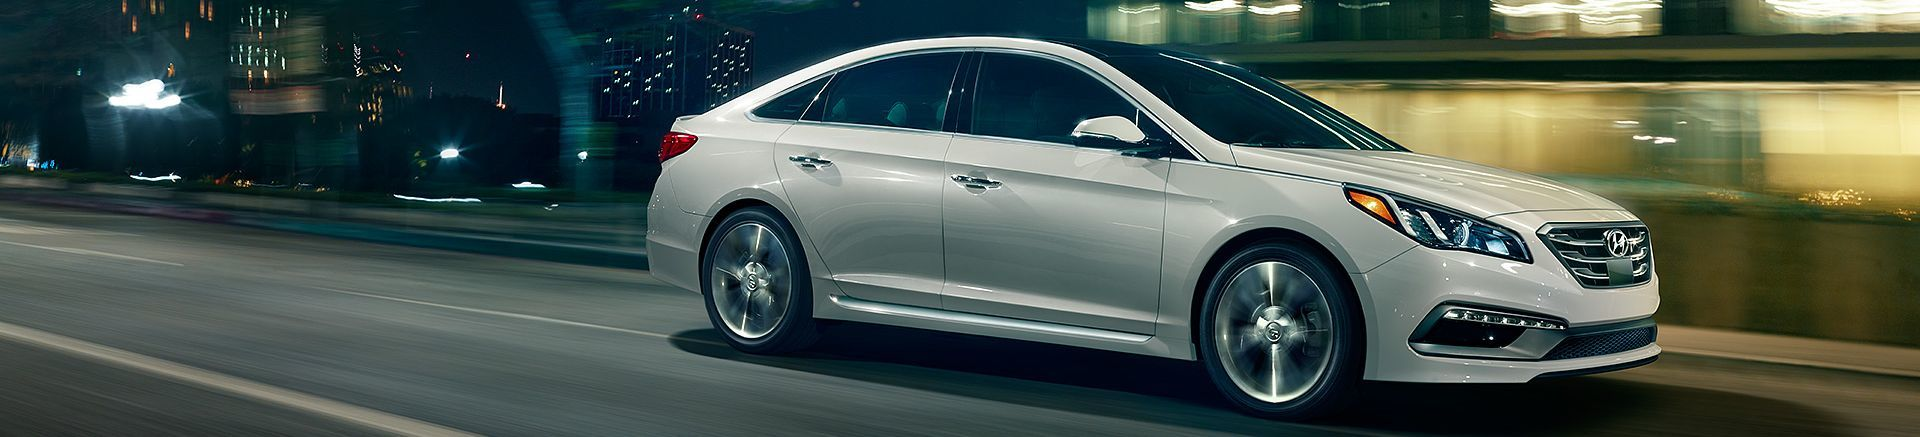 2017 Hyundai Sonata for Sale near Washington, DC